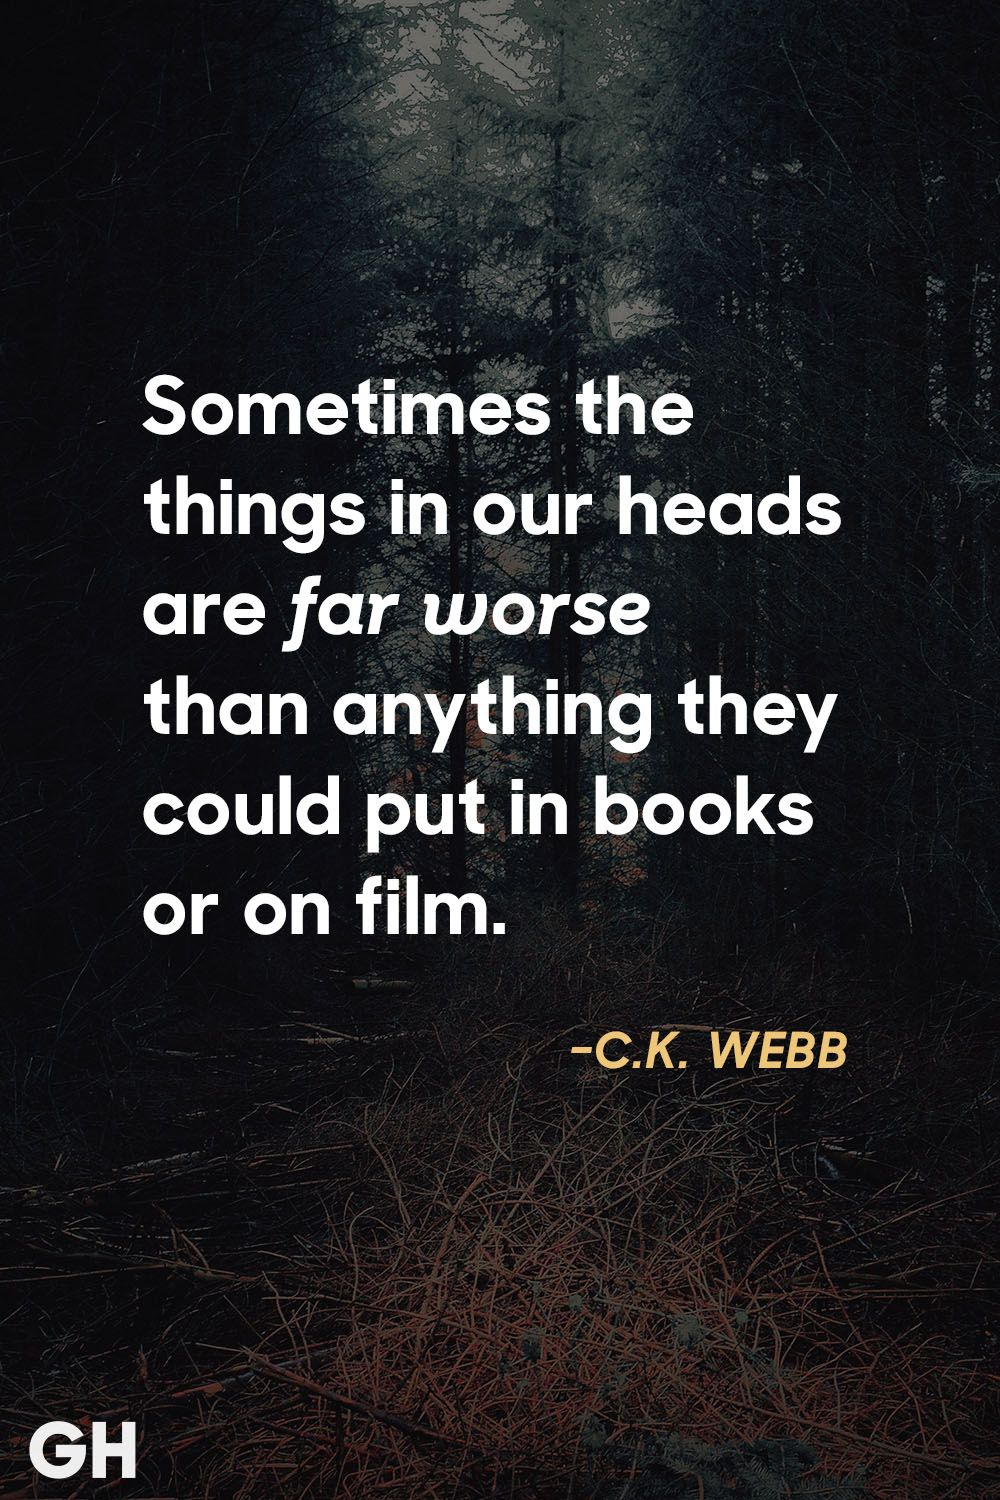 Creepy Quotes 18 Scary Quotes   Creepy Sayings from Movies & Books Creepy Quotes